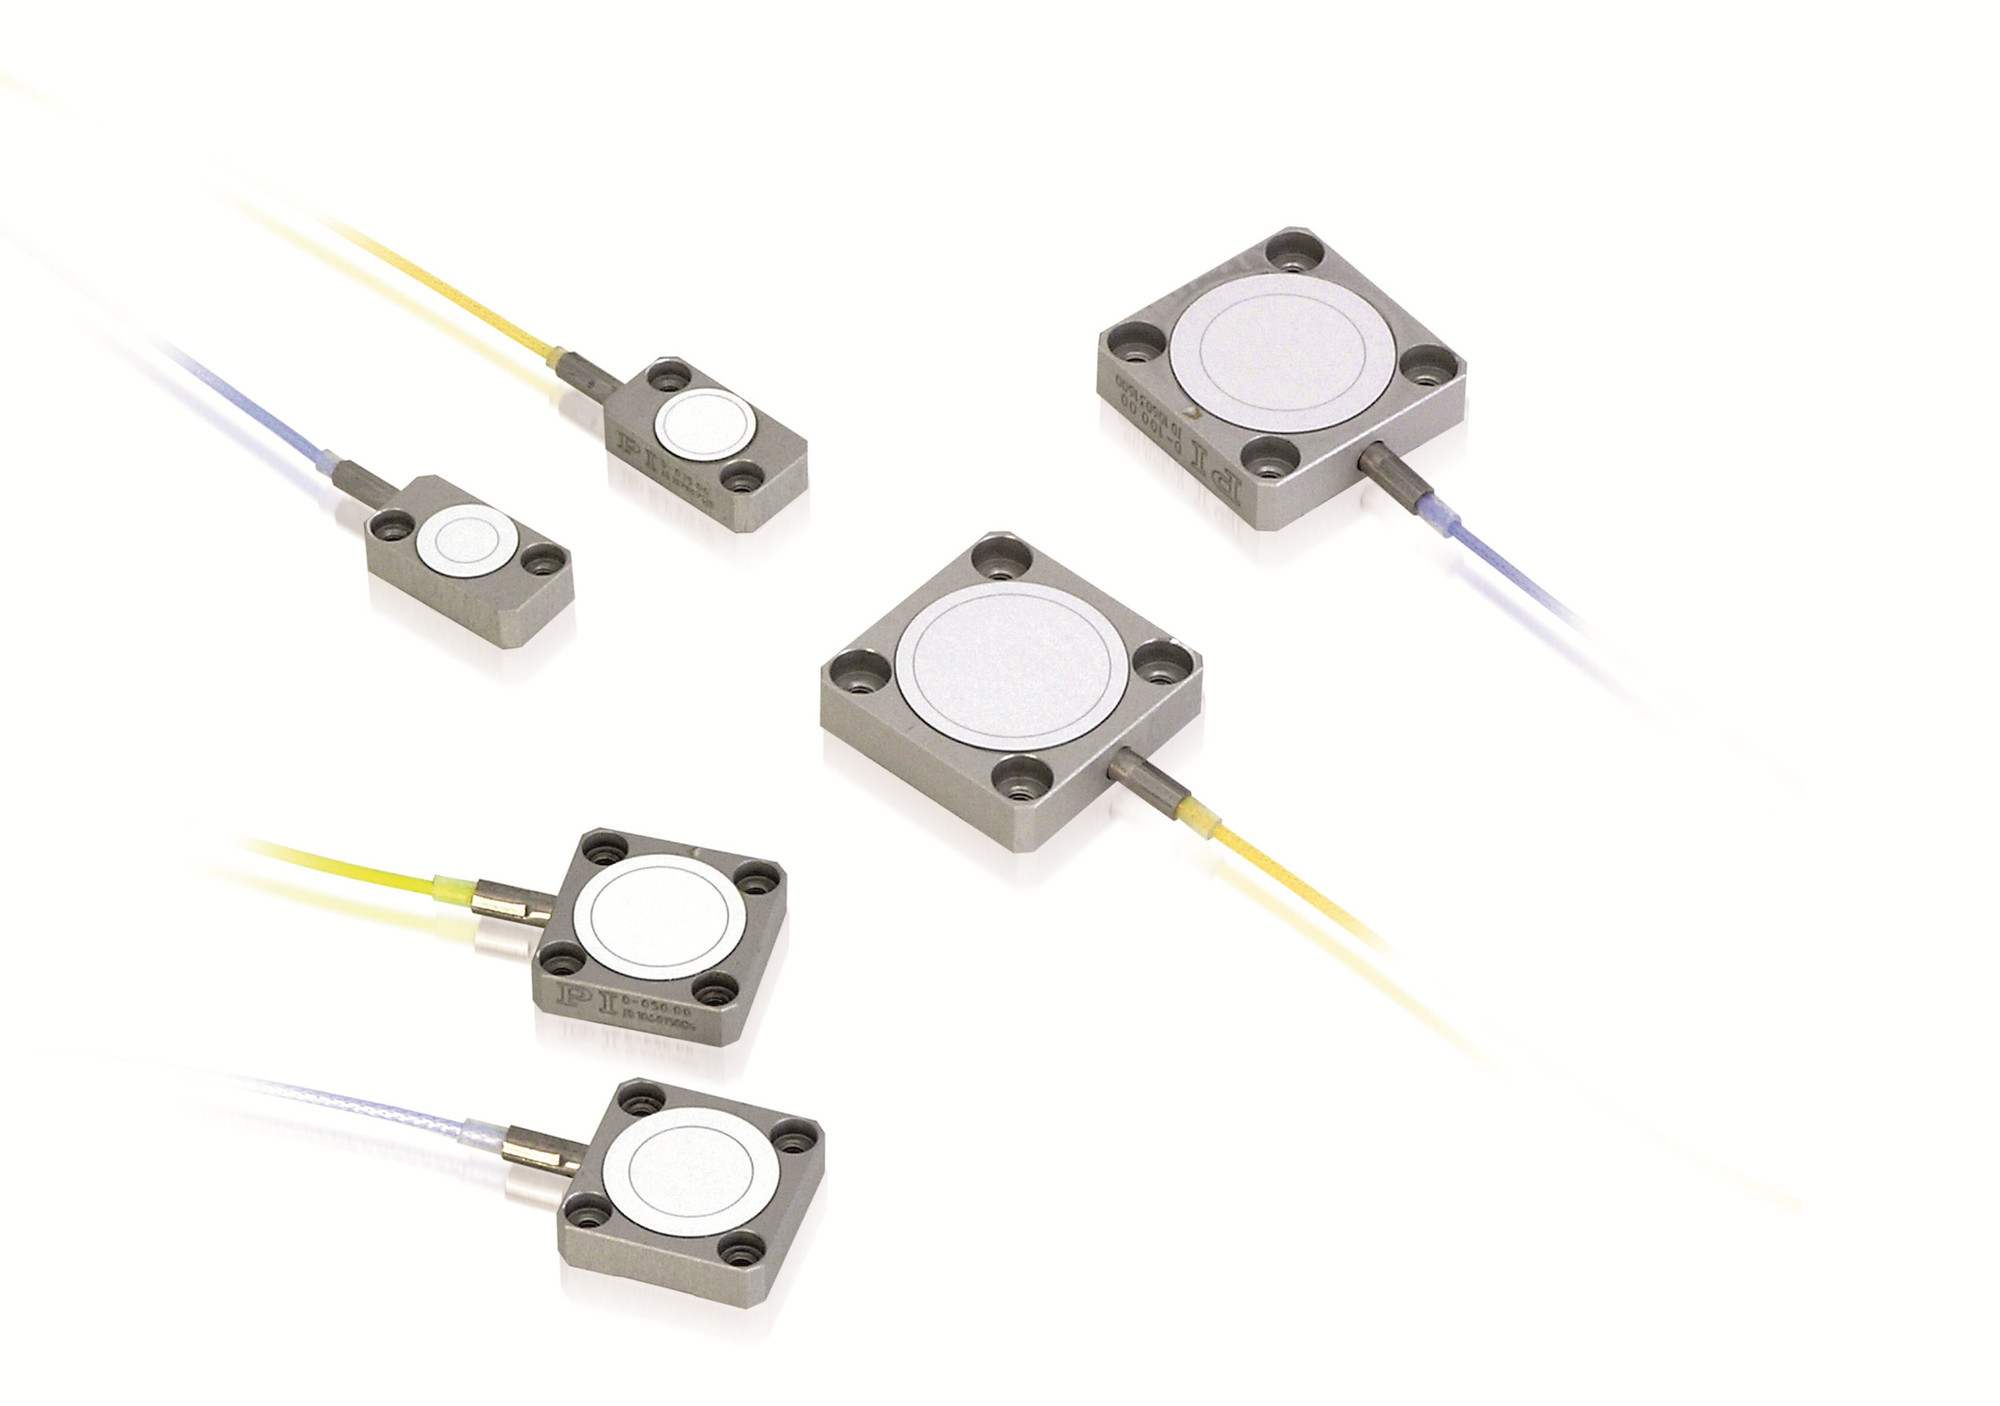 D 015 D 050 D 100 Capacitive Sensors